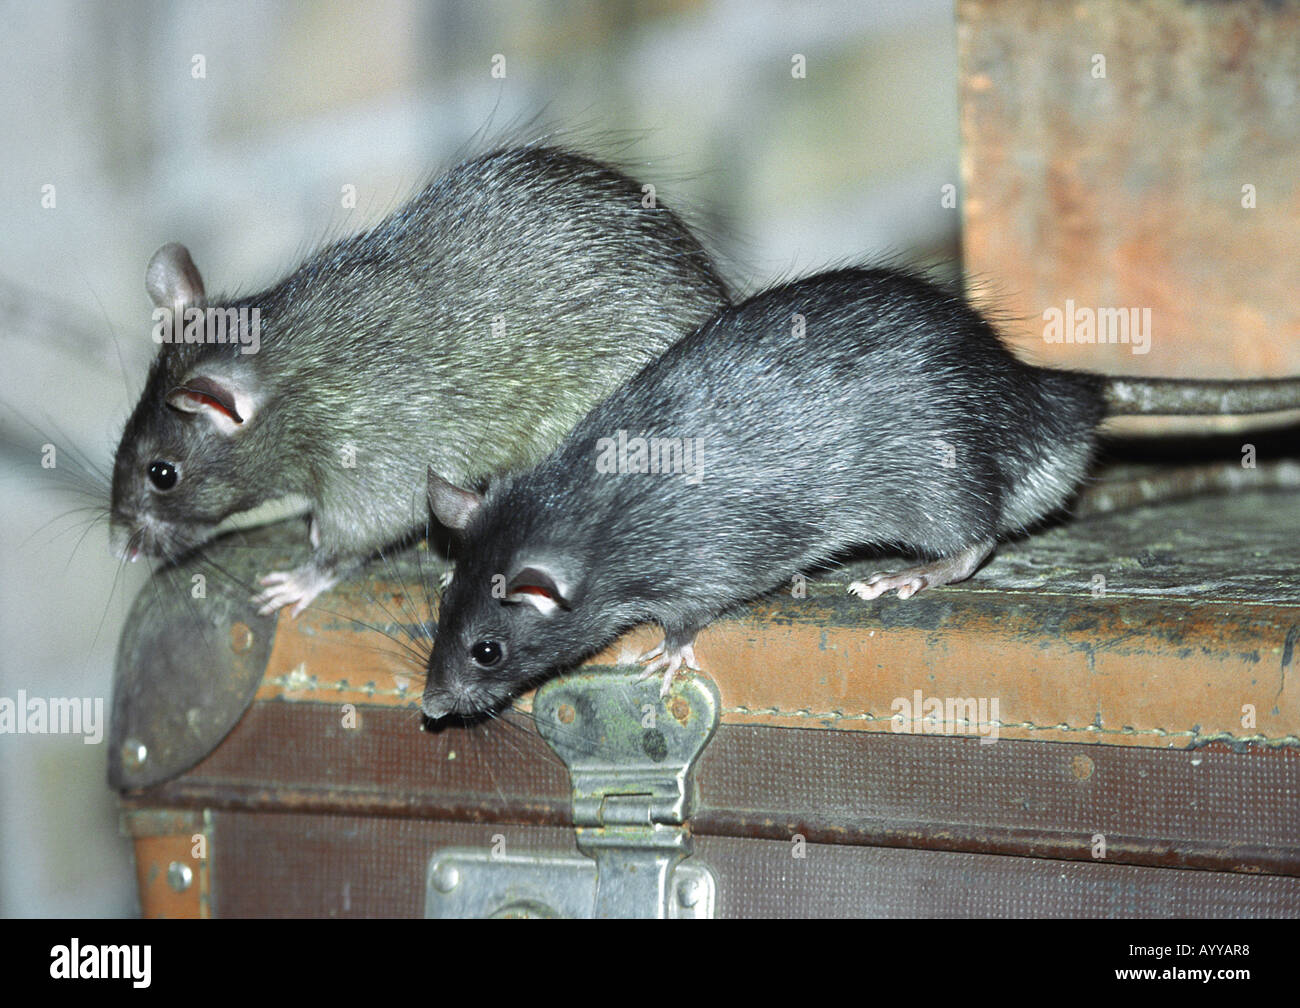 Black Rat, Roof Rat, House Rat, Ship Rat (Rattus Rattus), Two Animals On An  Old Suitcase